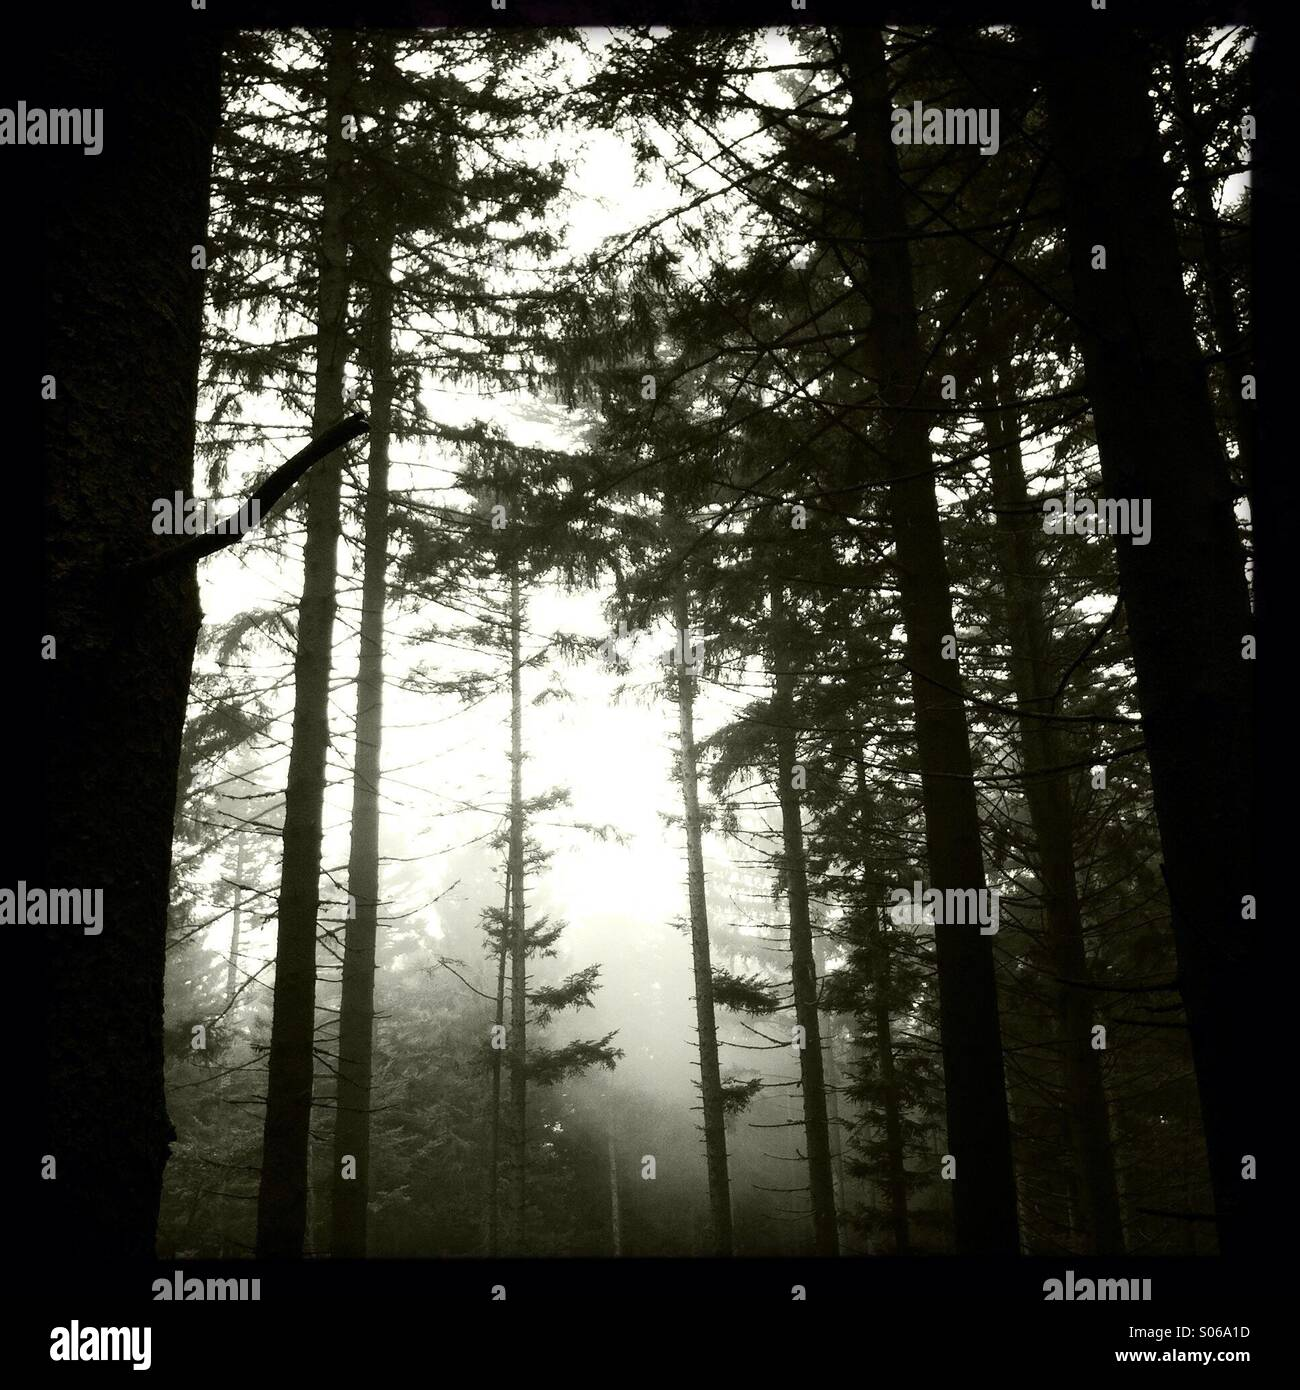 Dramatic atmosphere in the woods - Stock Image